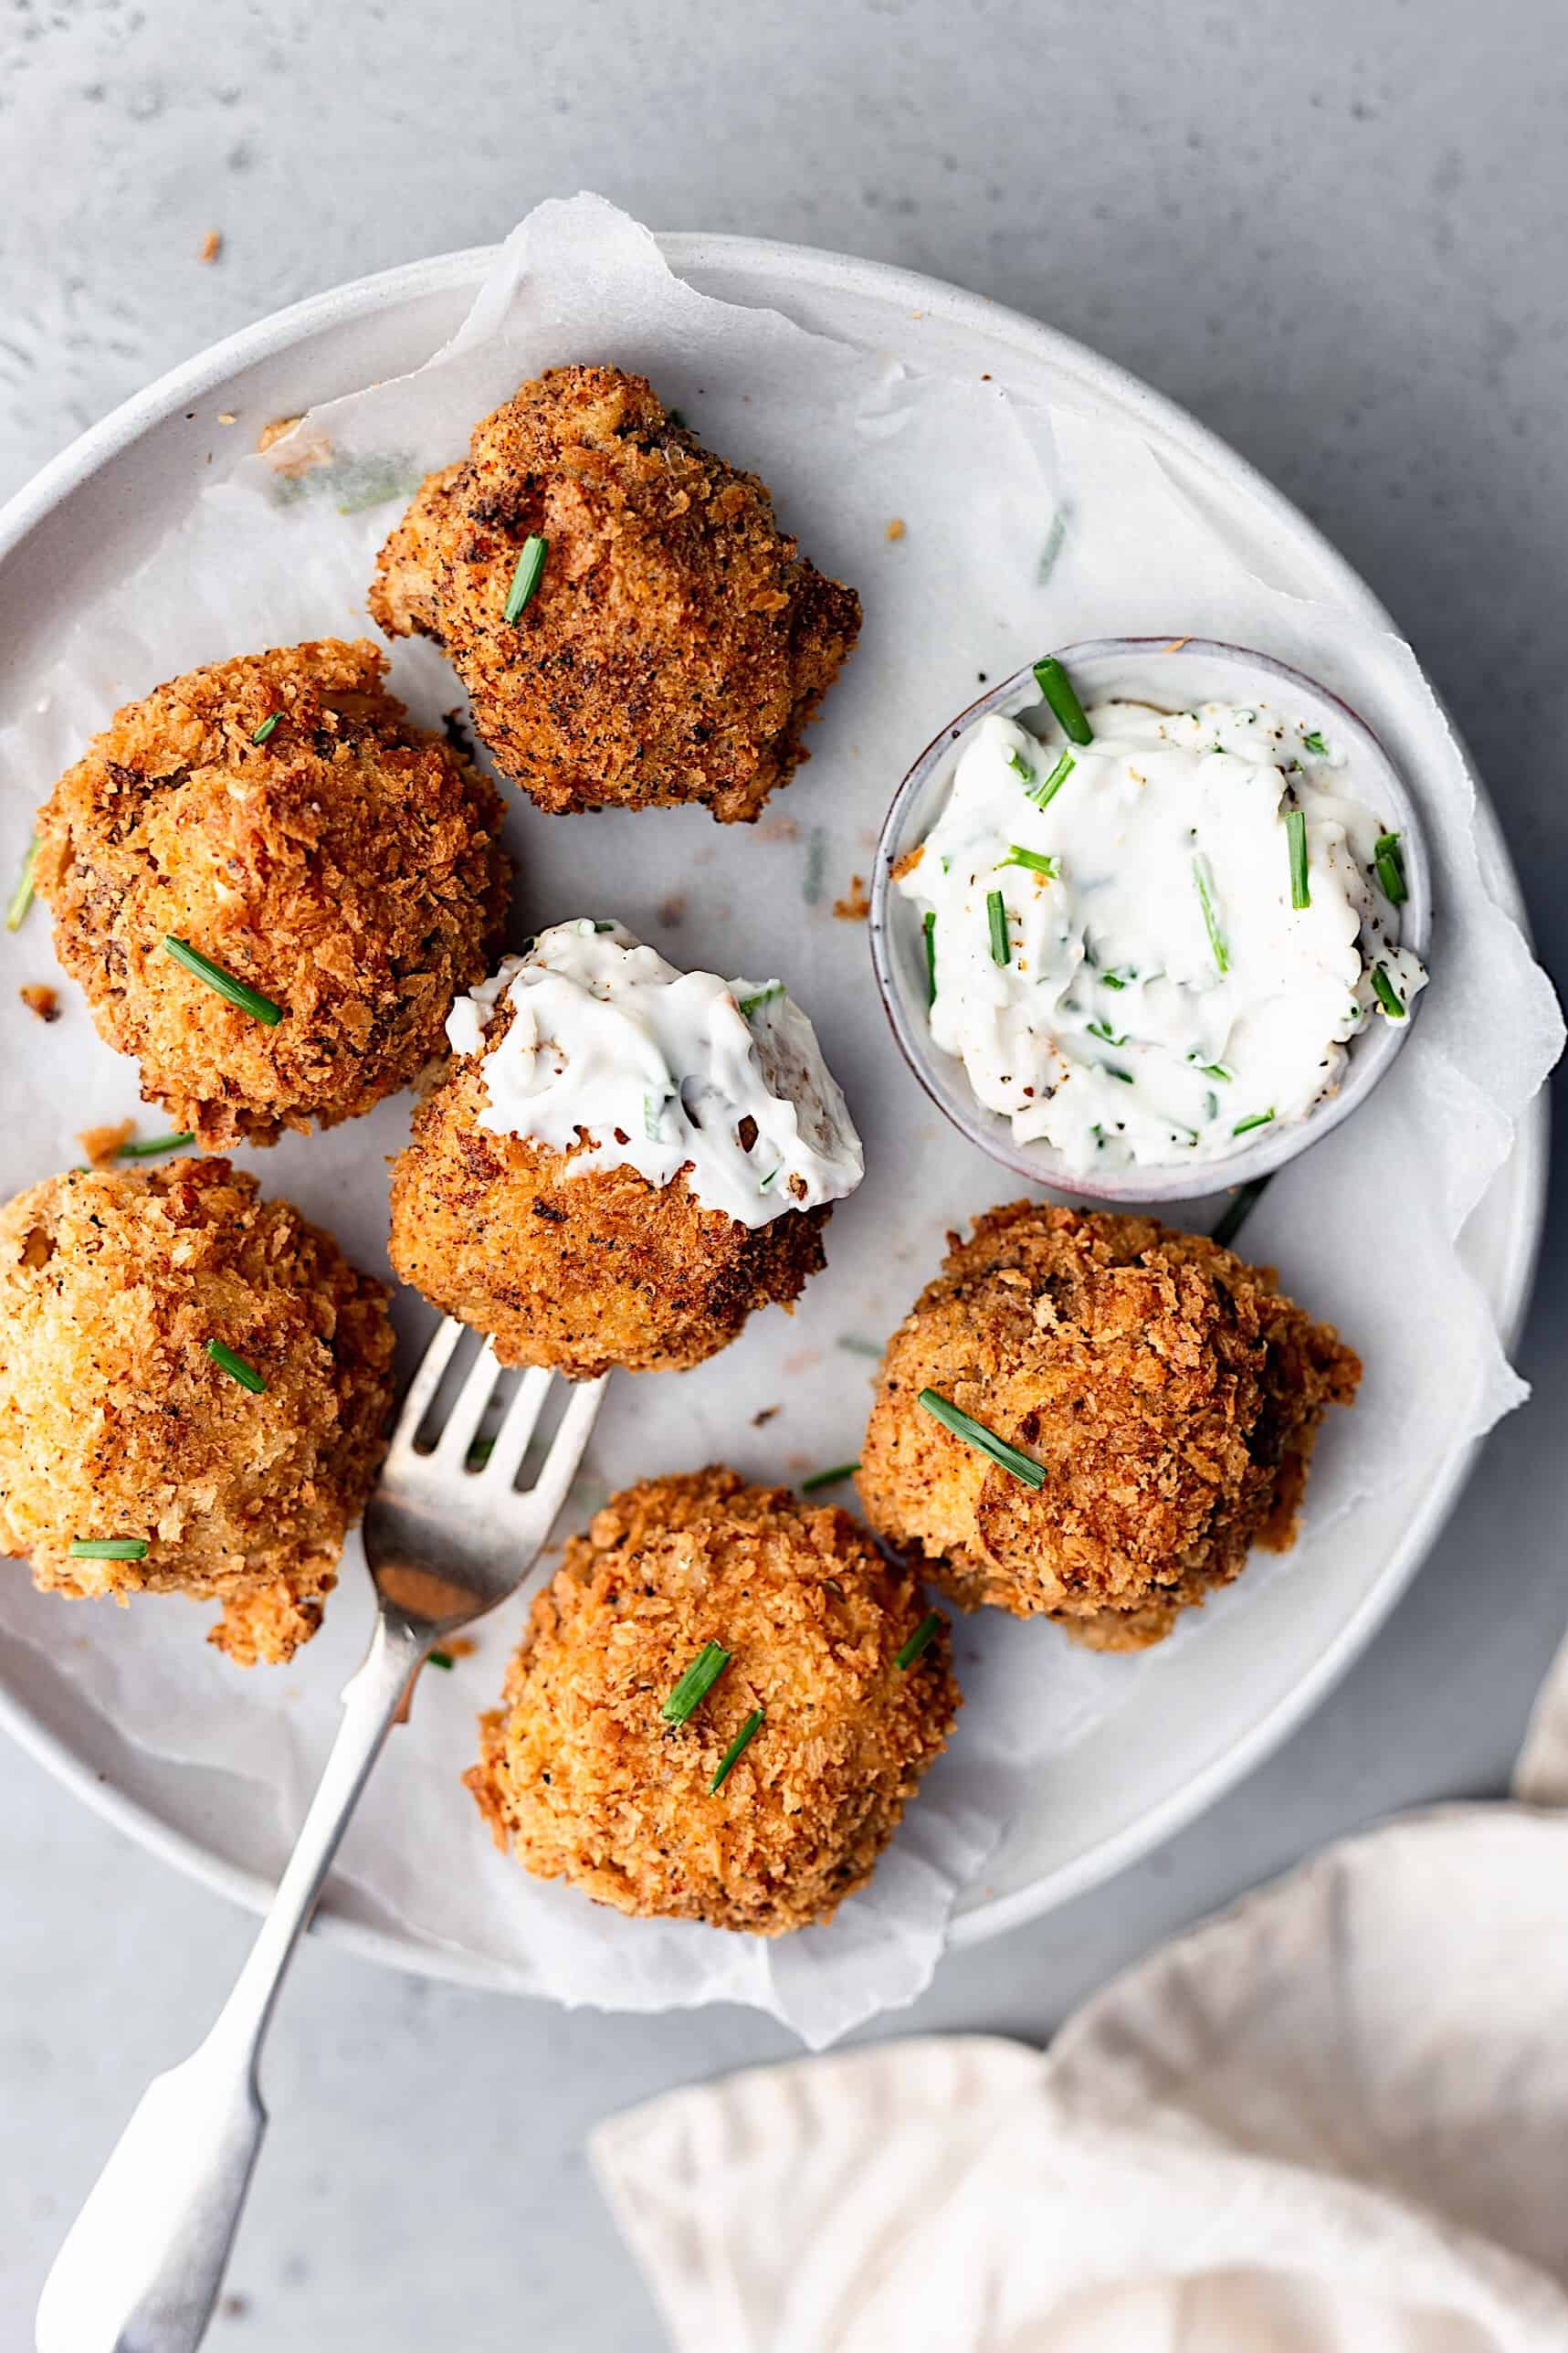 These vegan crispy garlic breaded mushrooms are the New Year's Eve Recipe for a light snack or side dish! They're perfectly crunchy on the outside and juicy and tender on the inside. Served with a simple lemon, chive and mayonnaise dip!